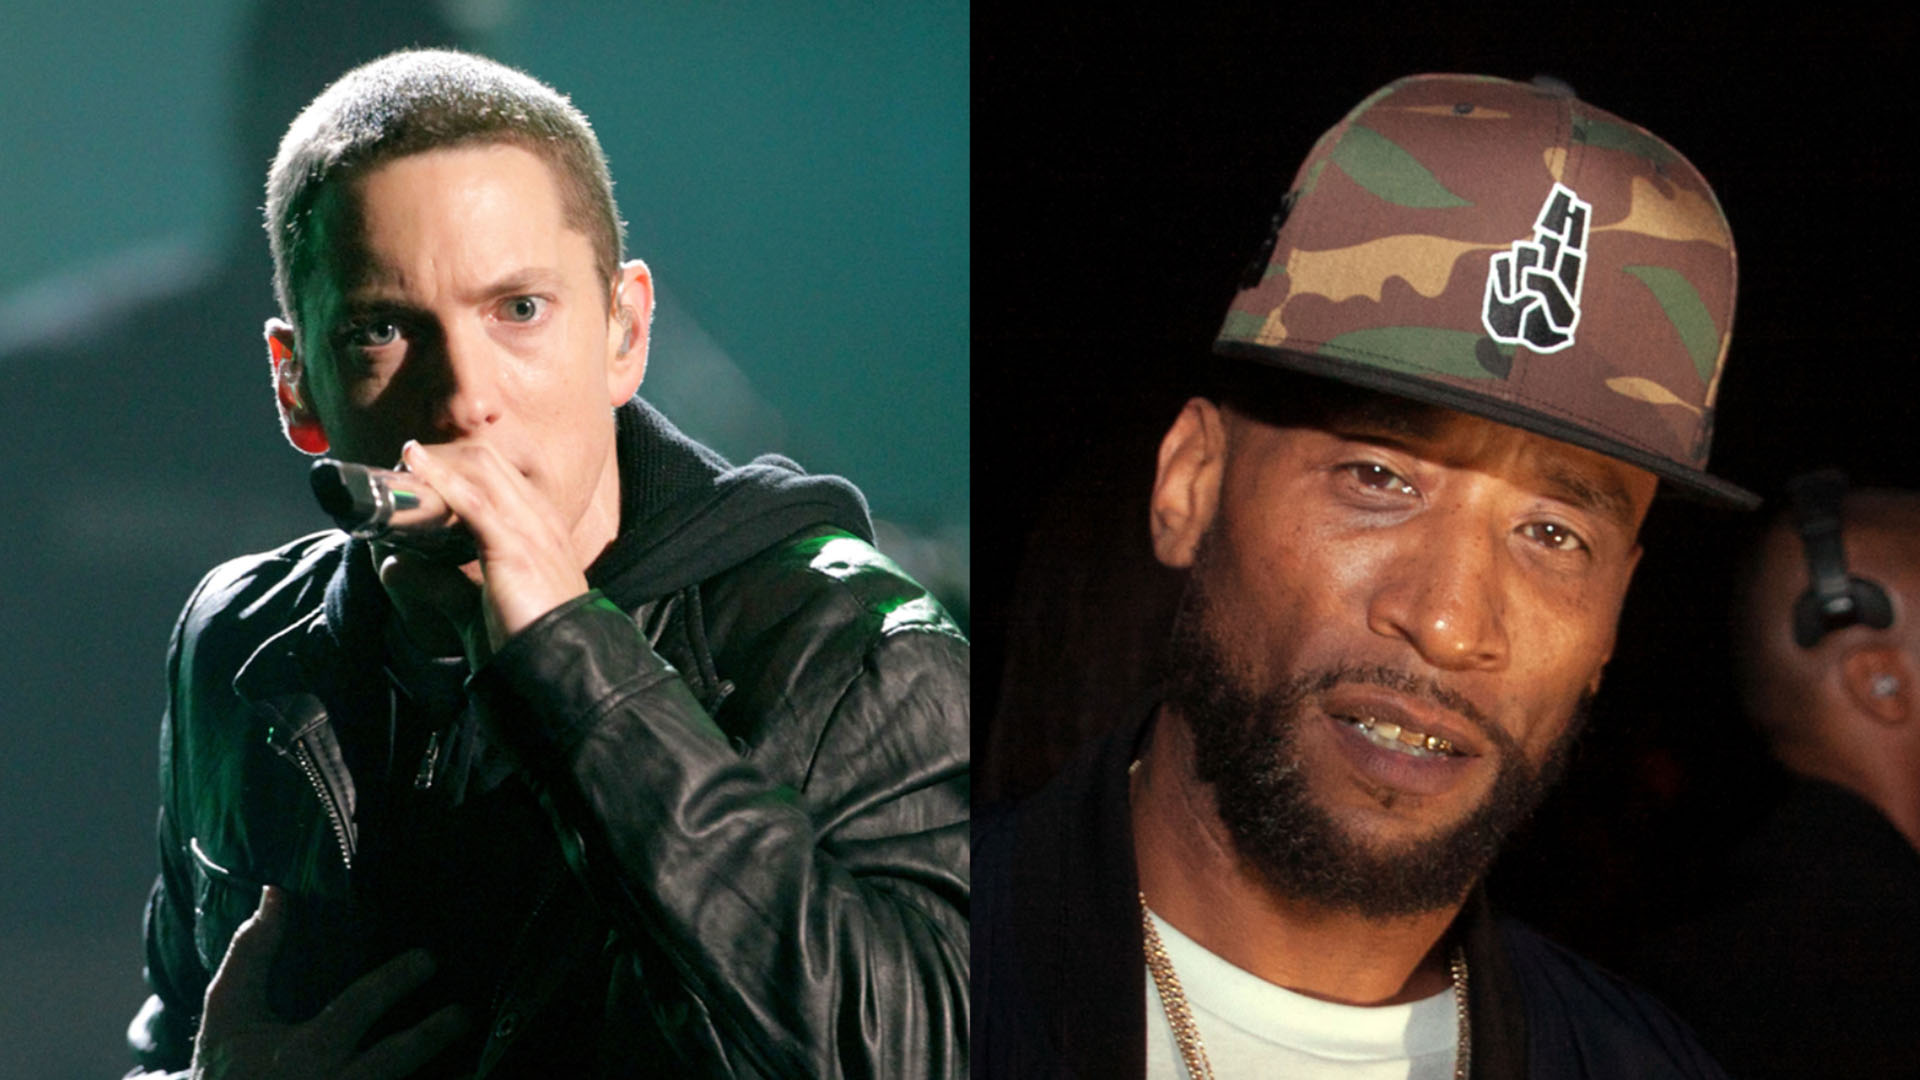 Lord Jamar Implies That Eminem Is Attracted to Him and Accuses Eminem of Wearing Blackface